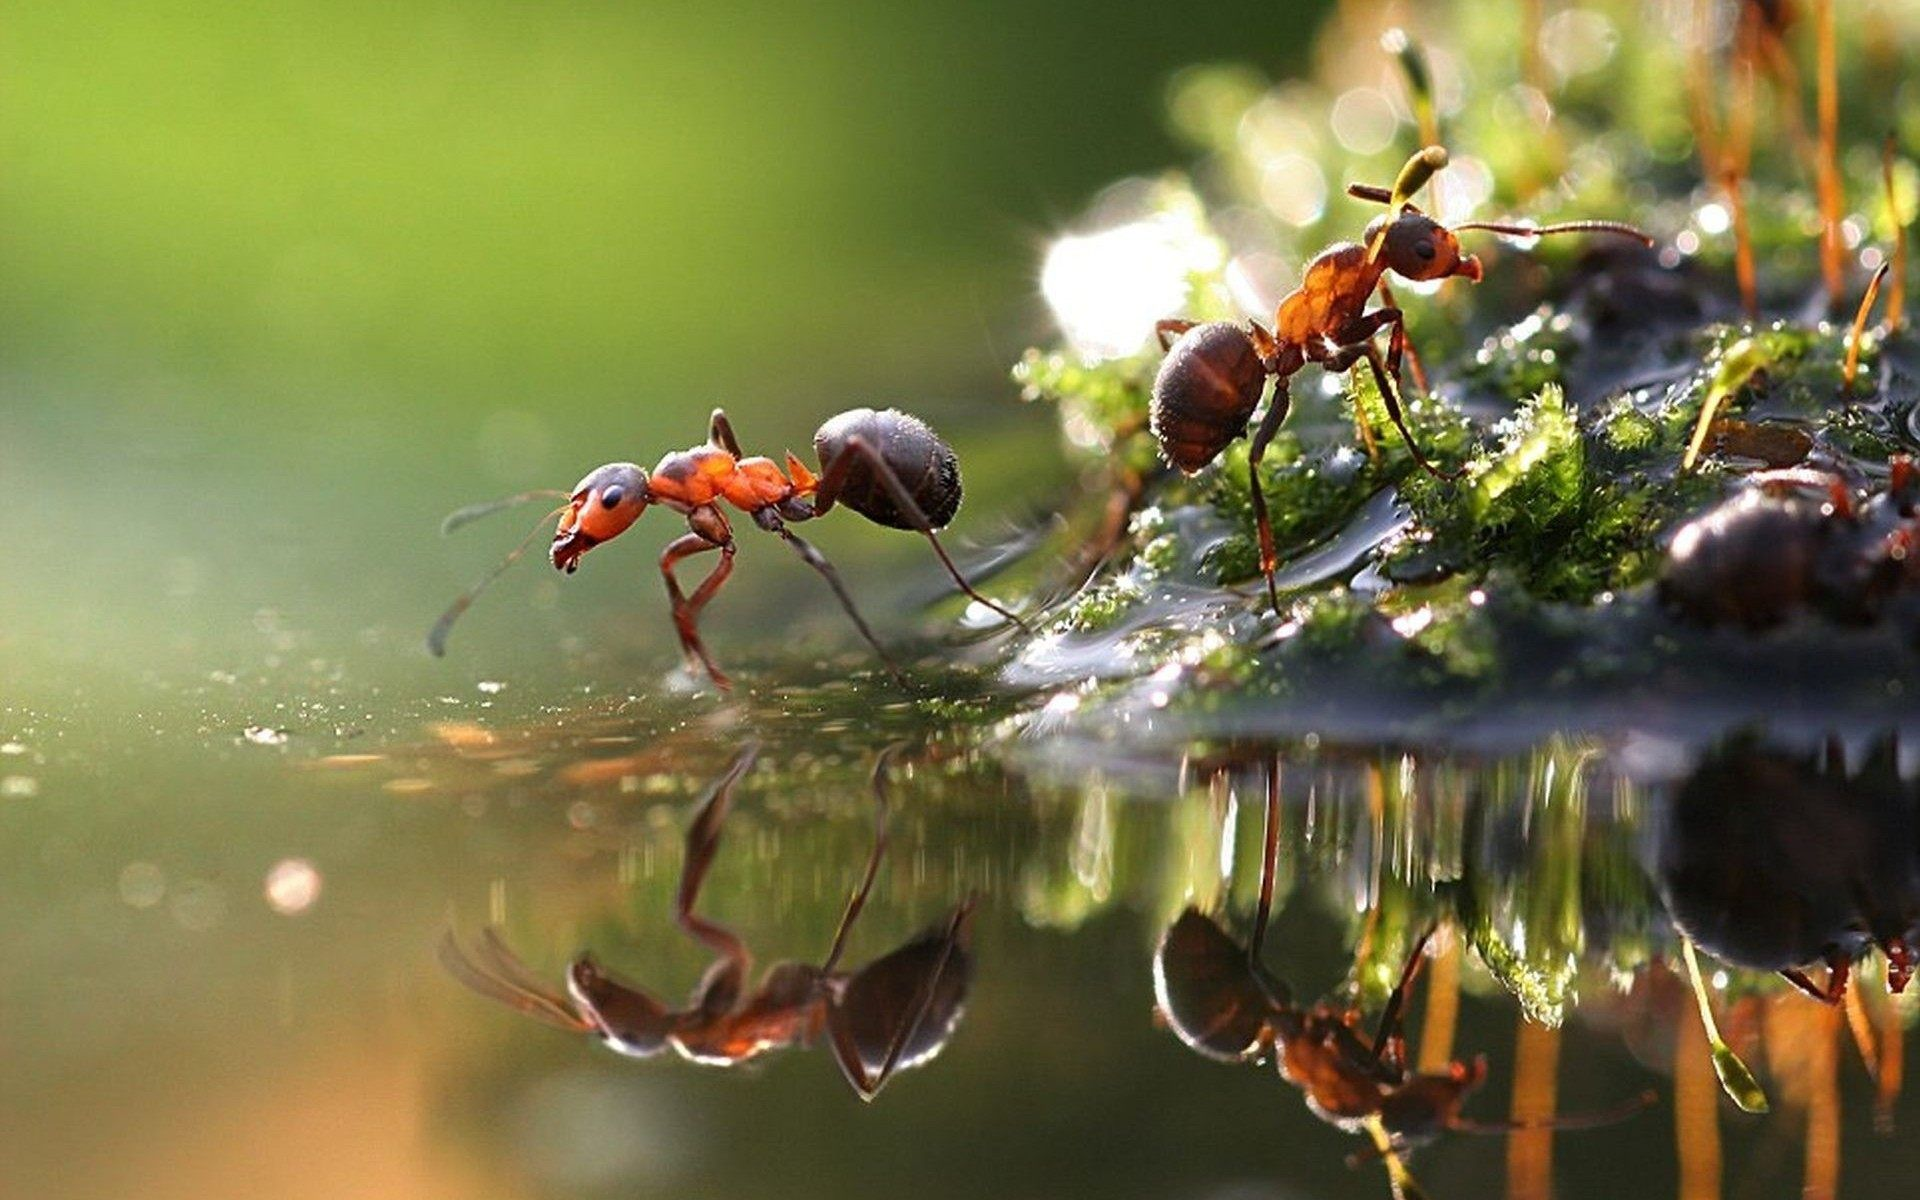 Red Ant Wallpaper Downlod For Desktop Of Red Ants Insect | fondos ...